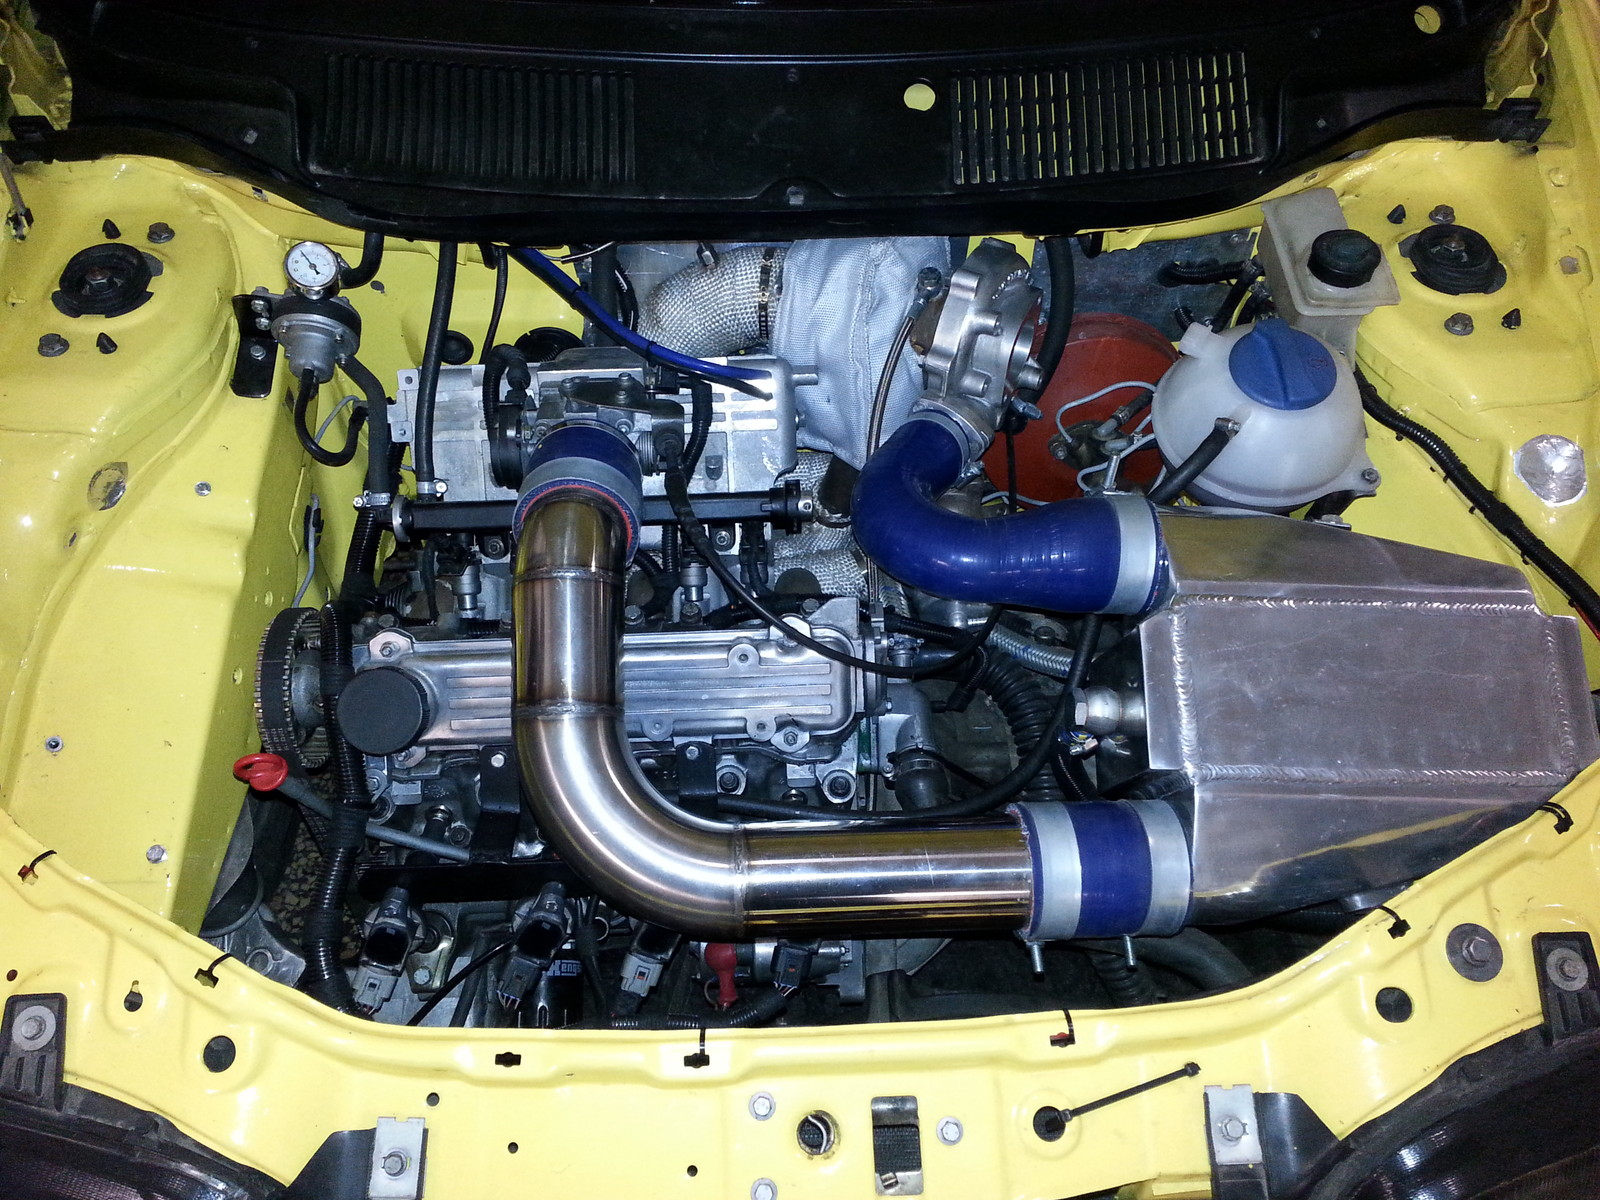 1997 Yellow Fiat Punto Gt Pictures Mods Upgrades